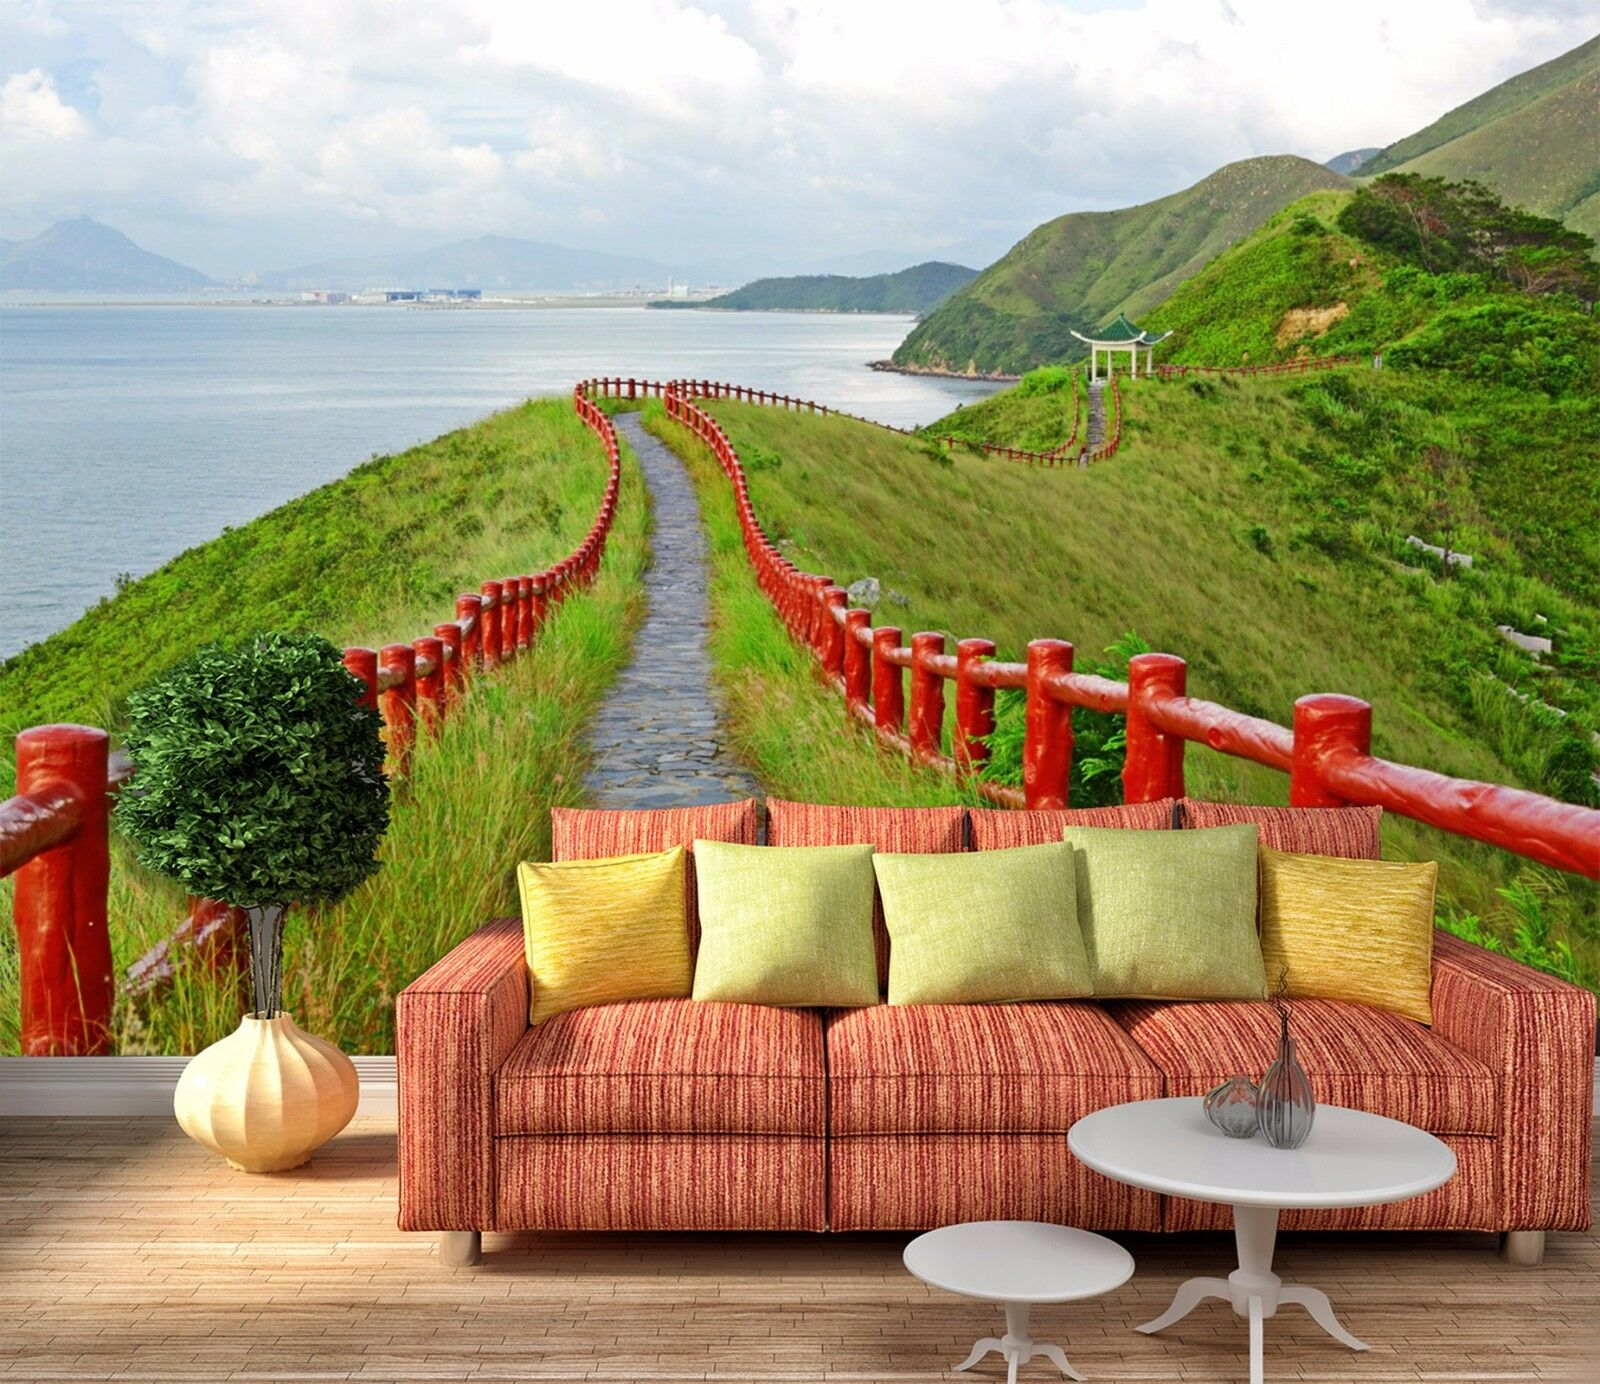 3D Sky Green Walkway 734 Wallpaper Mural Paper Wall Print Wallpaper Murals UK